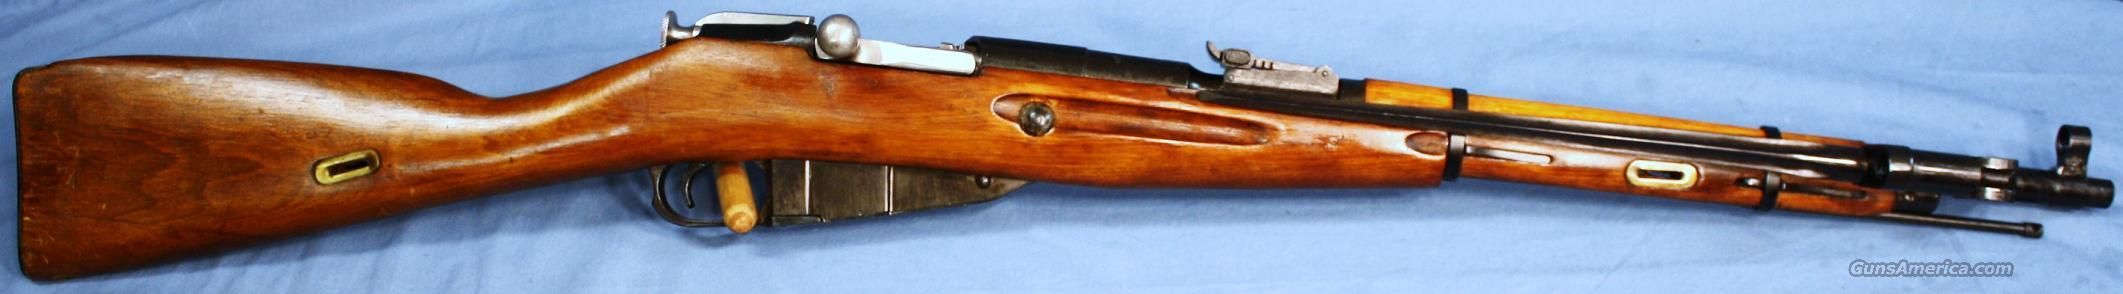 Mosin-Nagant M44 WWII Soviet Army Bolt Action Rifle 7.62x54R  Guns > Rifles > Mosin-Nagant Rifles/Carbines